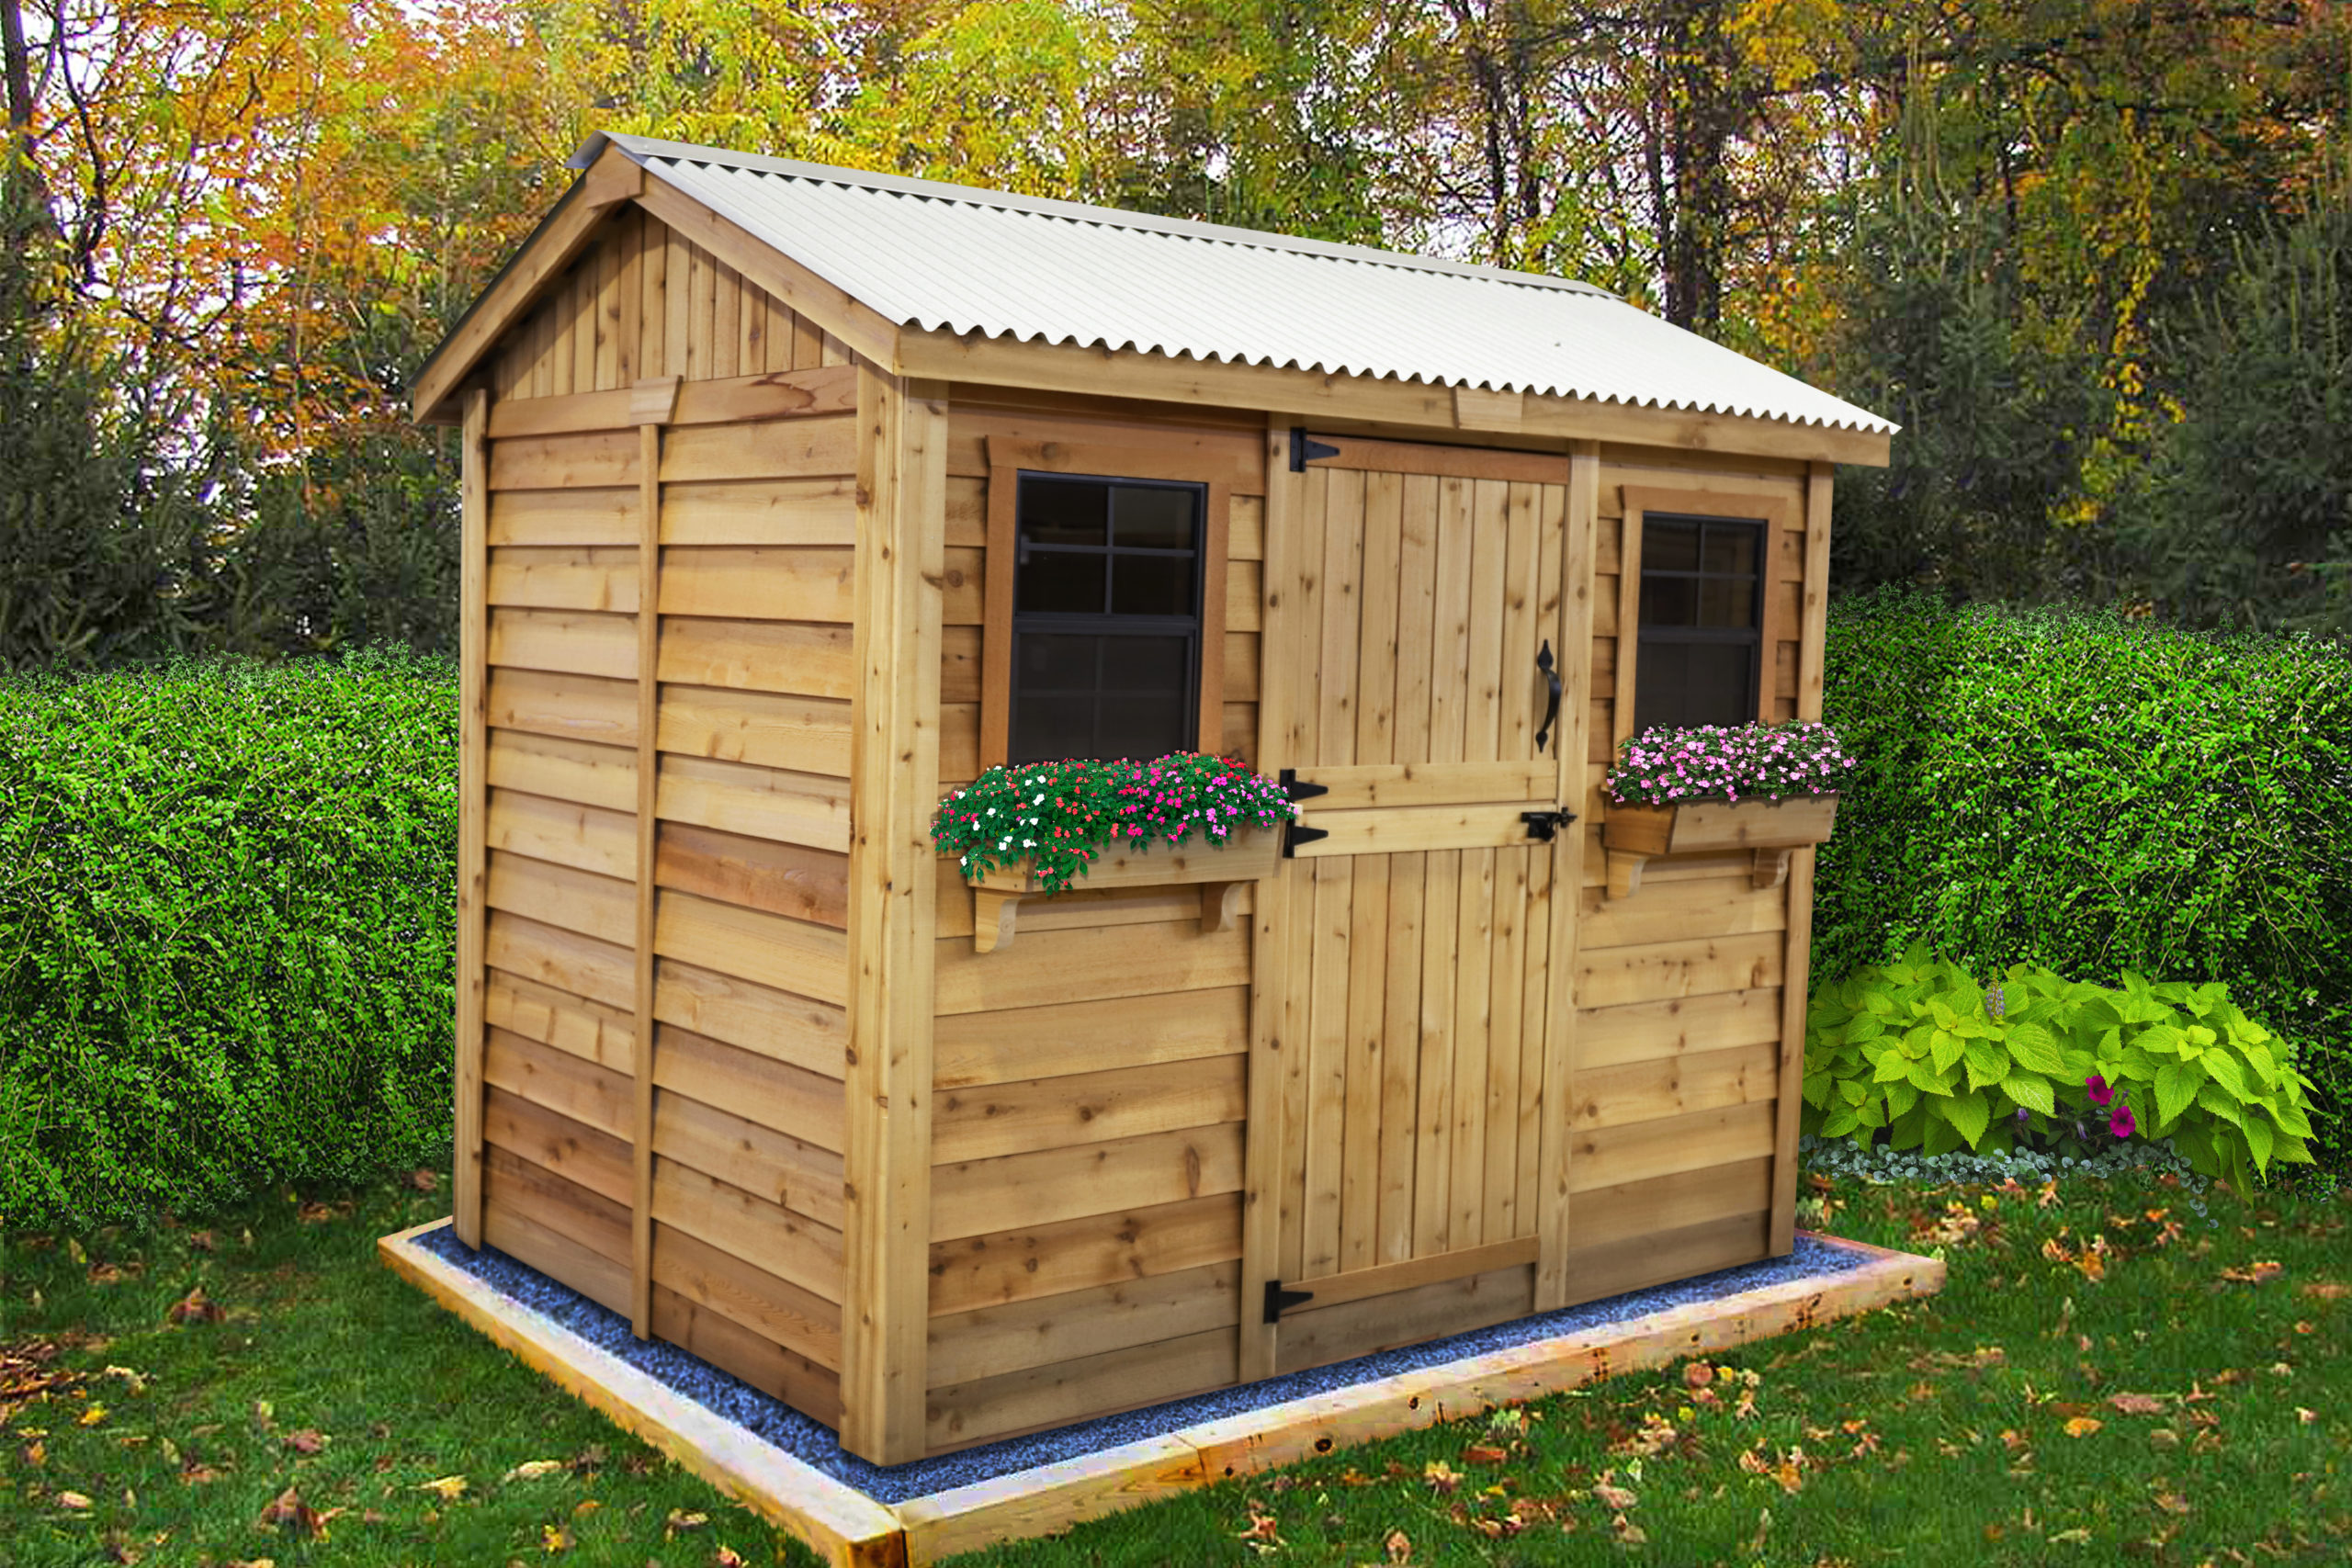 Shed Kits for Sale   9x6 Cabana   - Outdoor Living Today on Outdoor Living Today Cabana id=44205